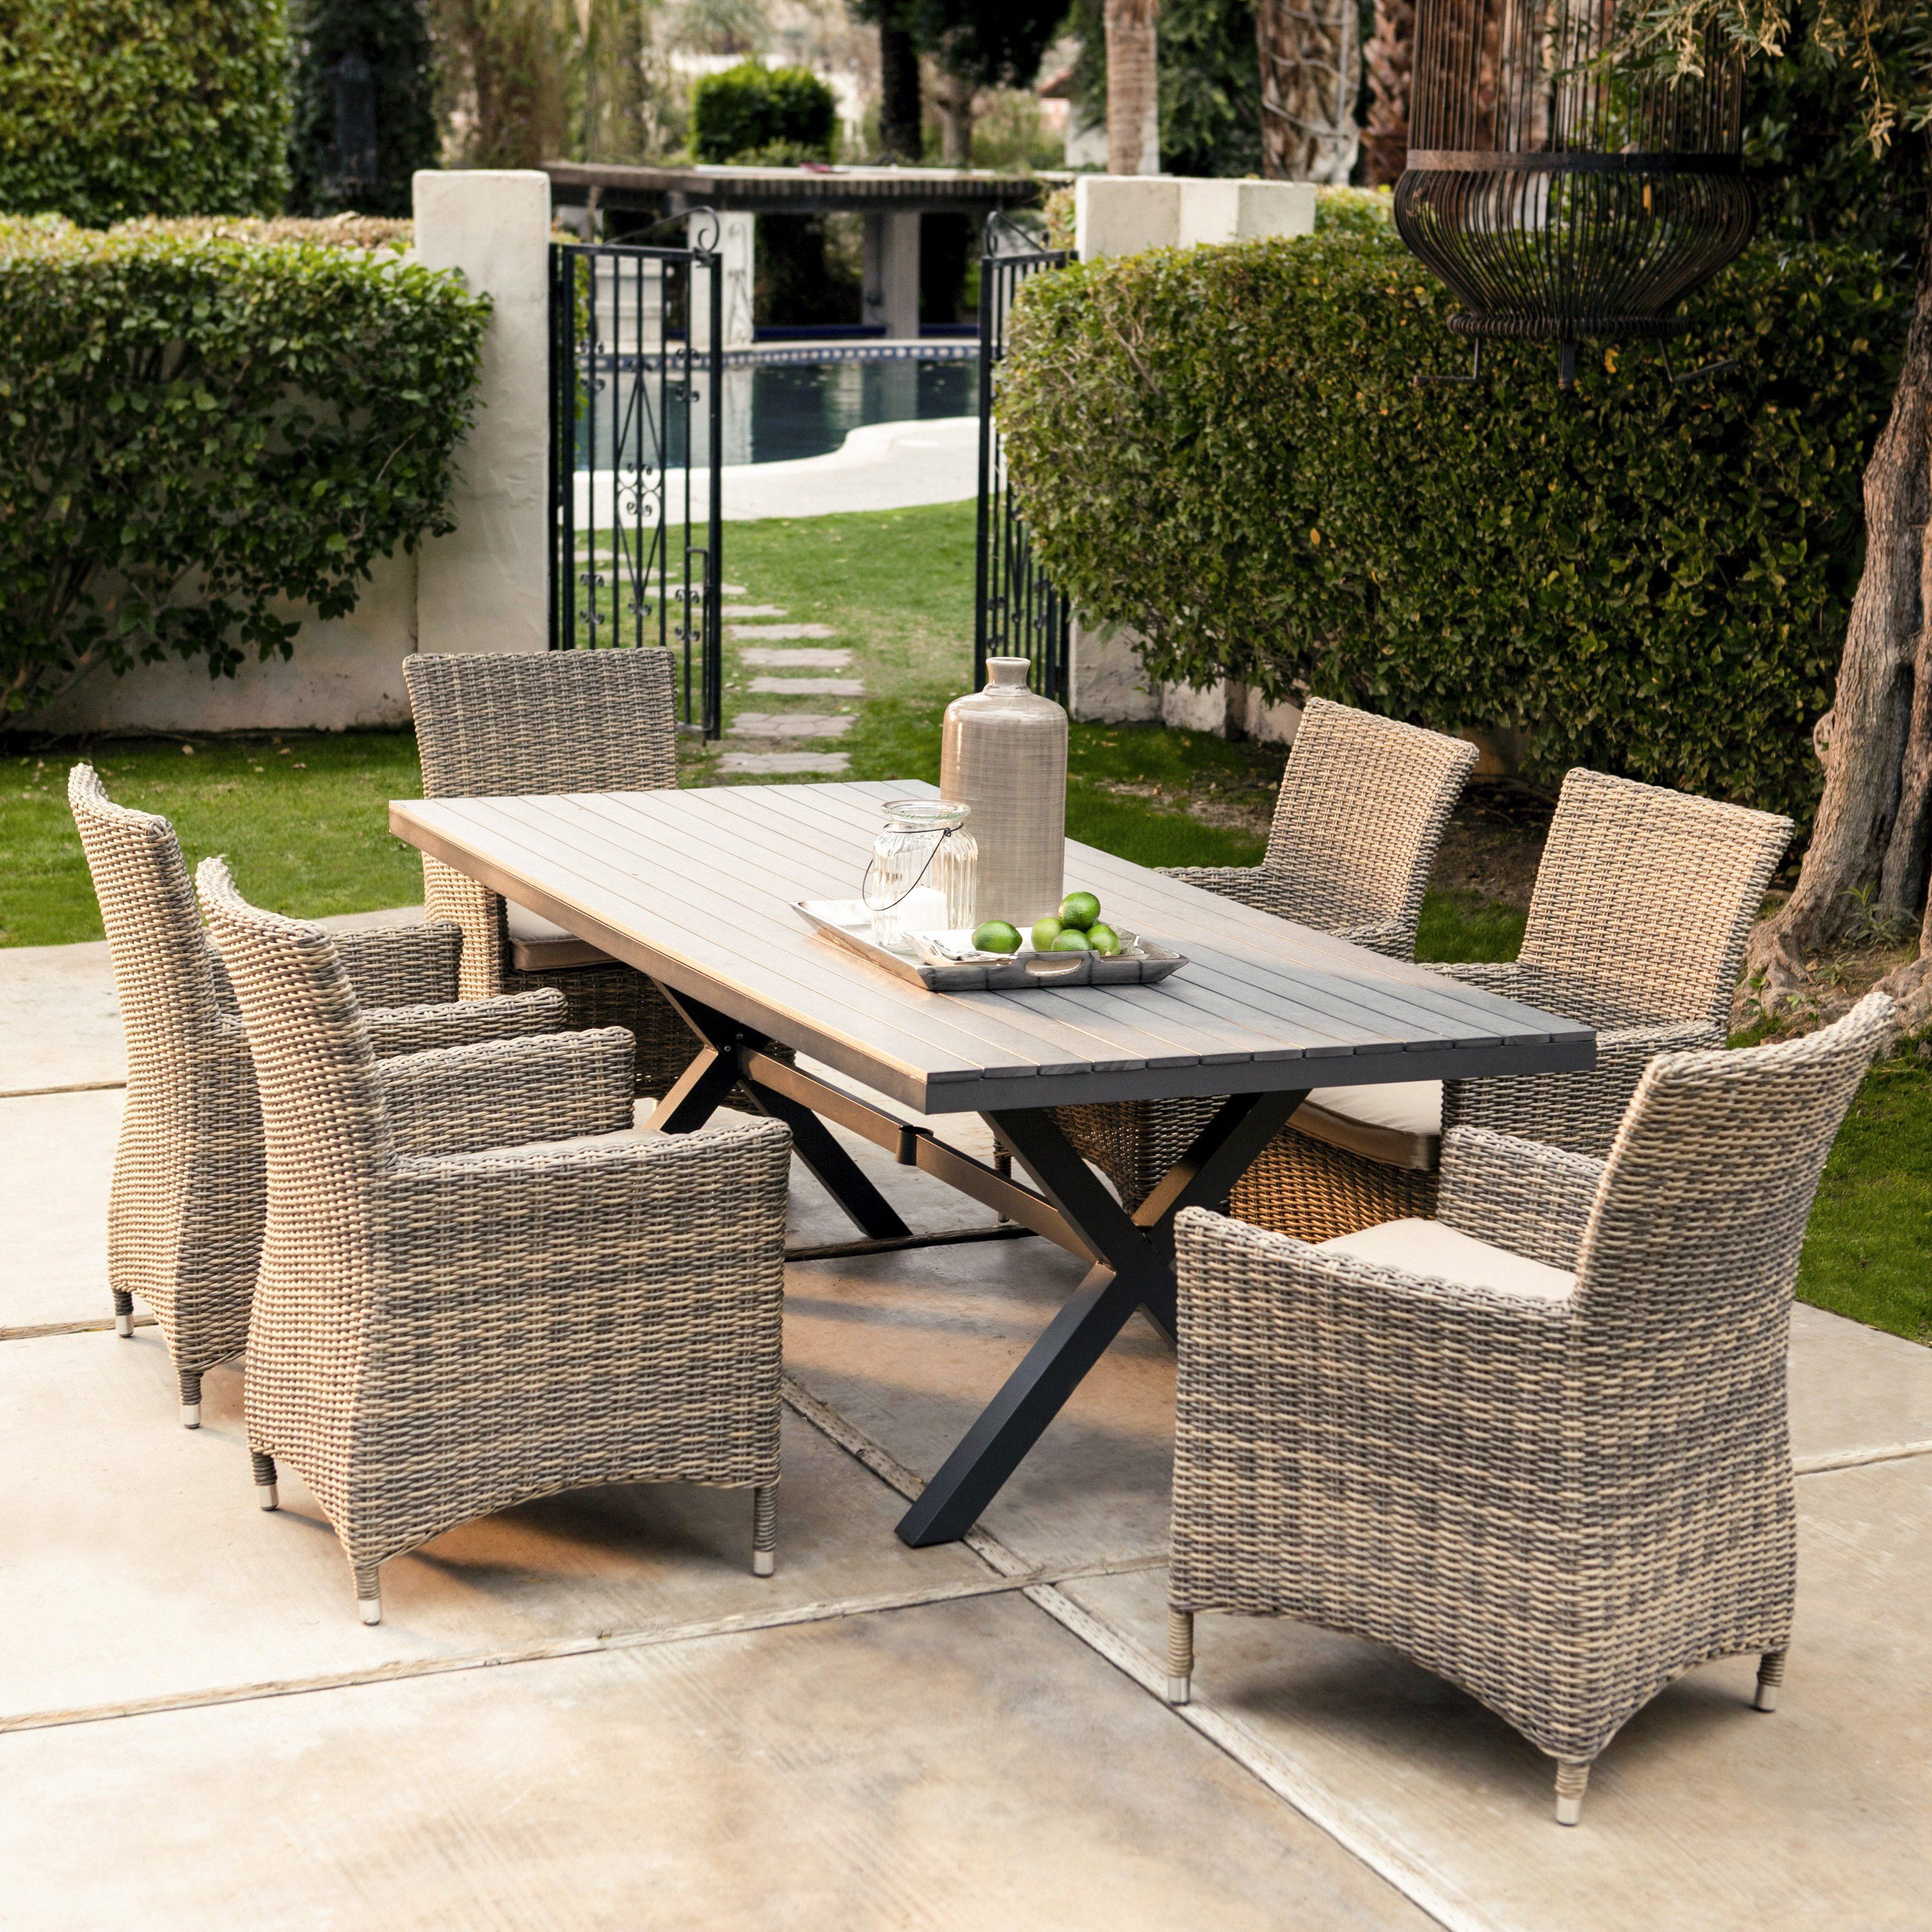 belham living bella all weather wicker piece patio dining set ave six fabric chair and accent table seats side adjustable height mini tiffany style lamps large farmhouse kitchen